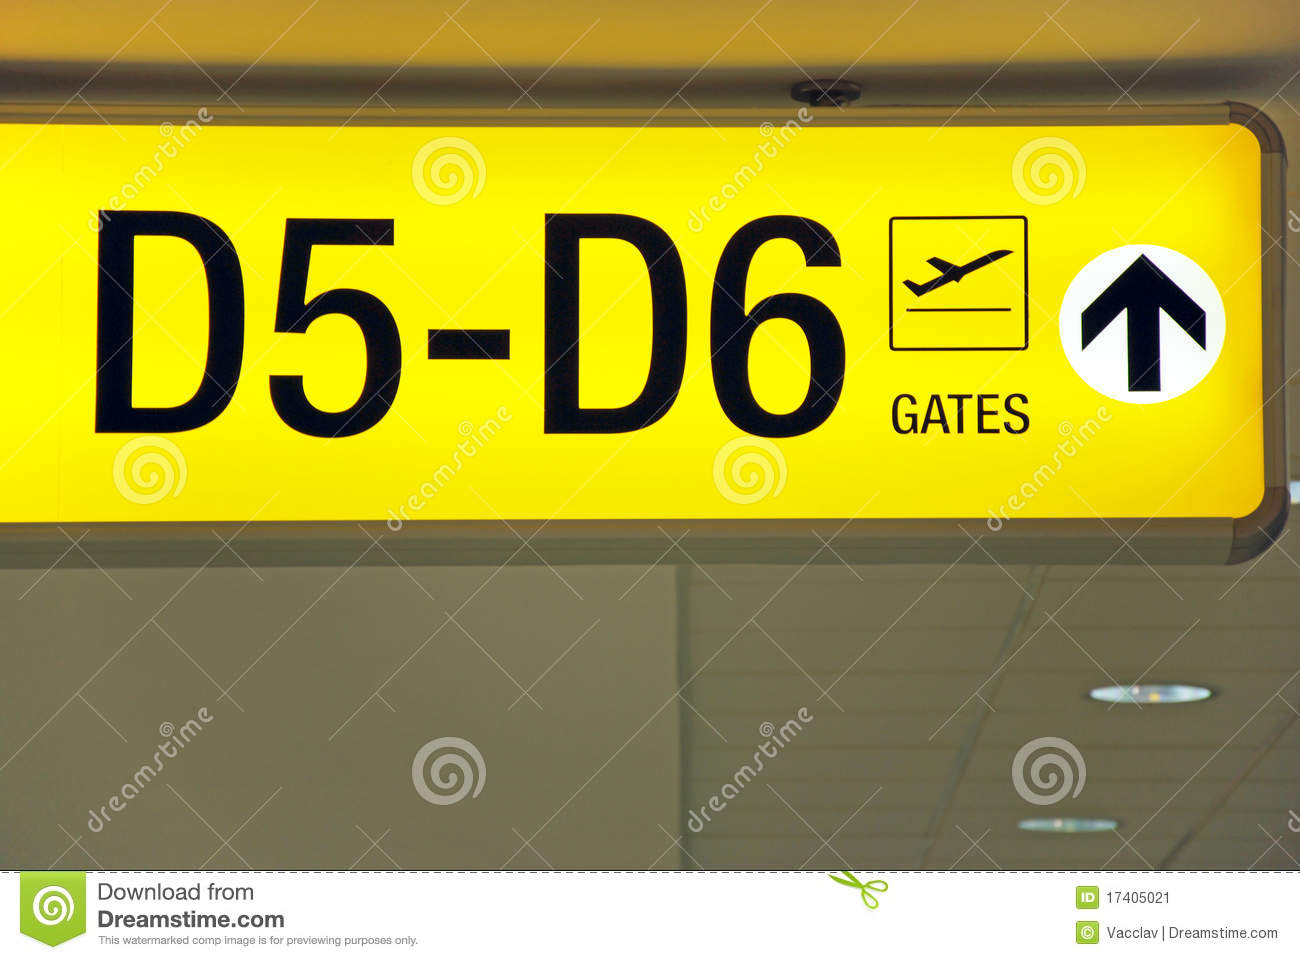 airport gate clipart - photo #22